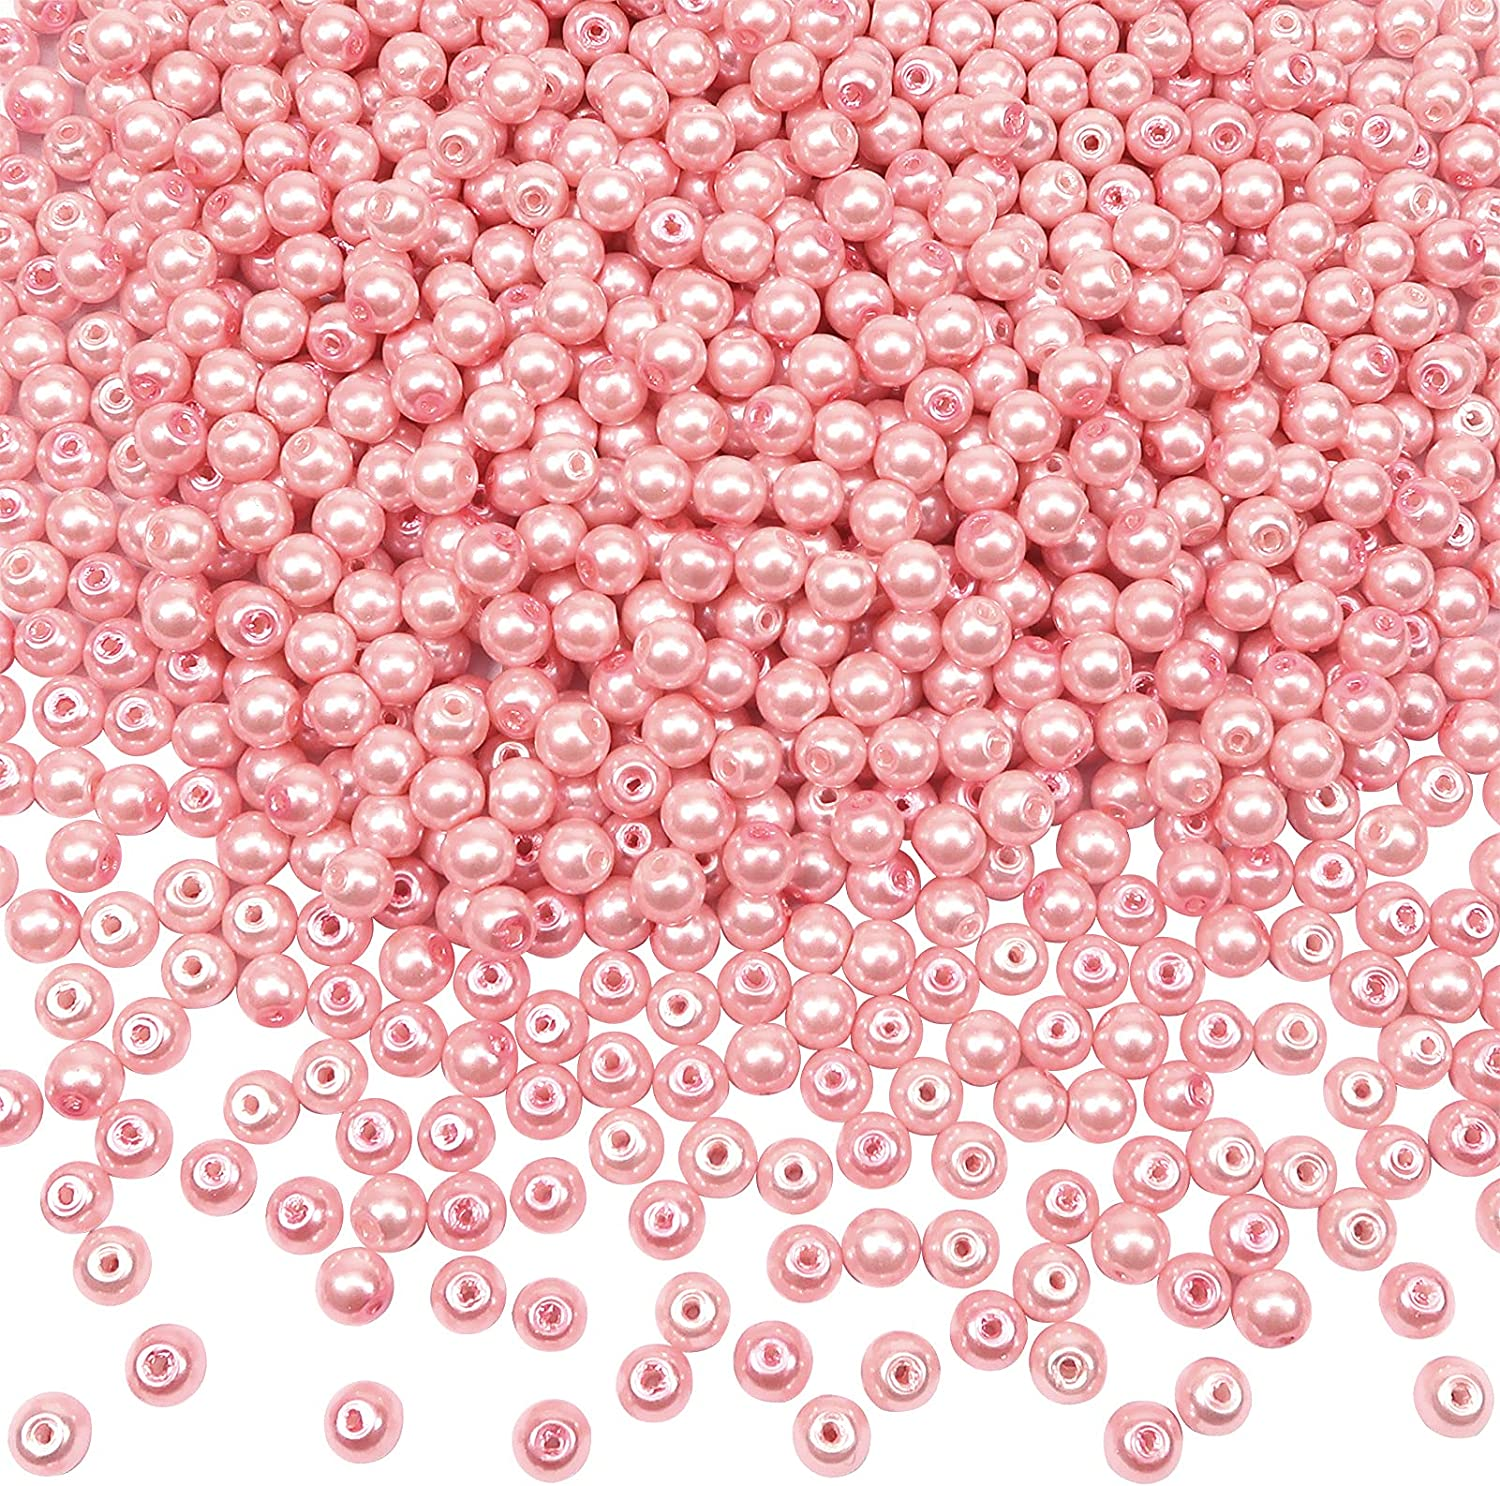 TOAOB 1000pcs Glass Pearl Beads Tiny Industry No. 1 Pink 4mm H Max 57% OFF with